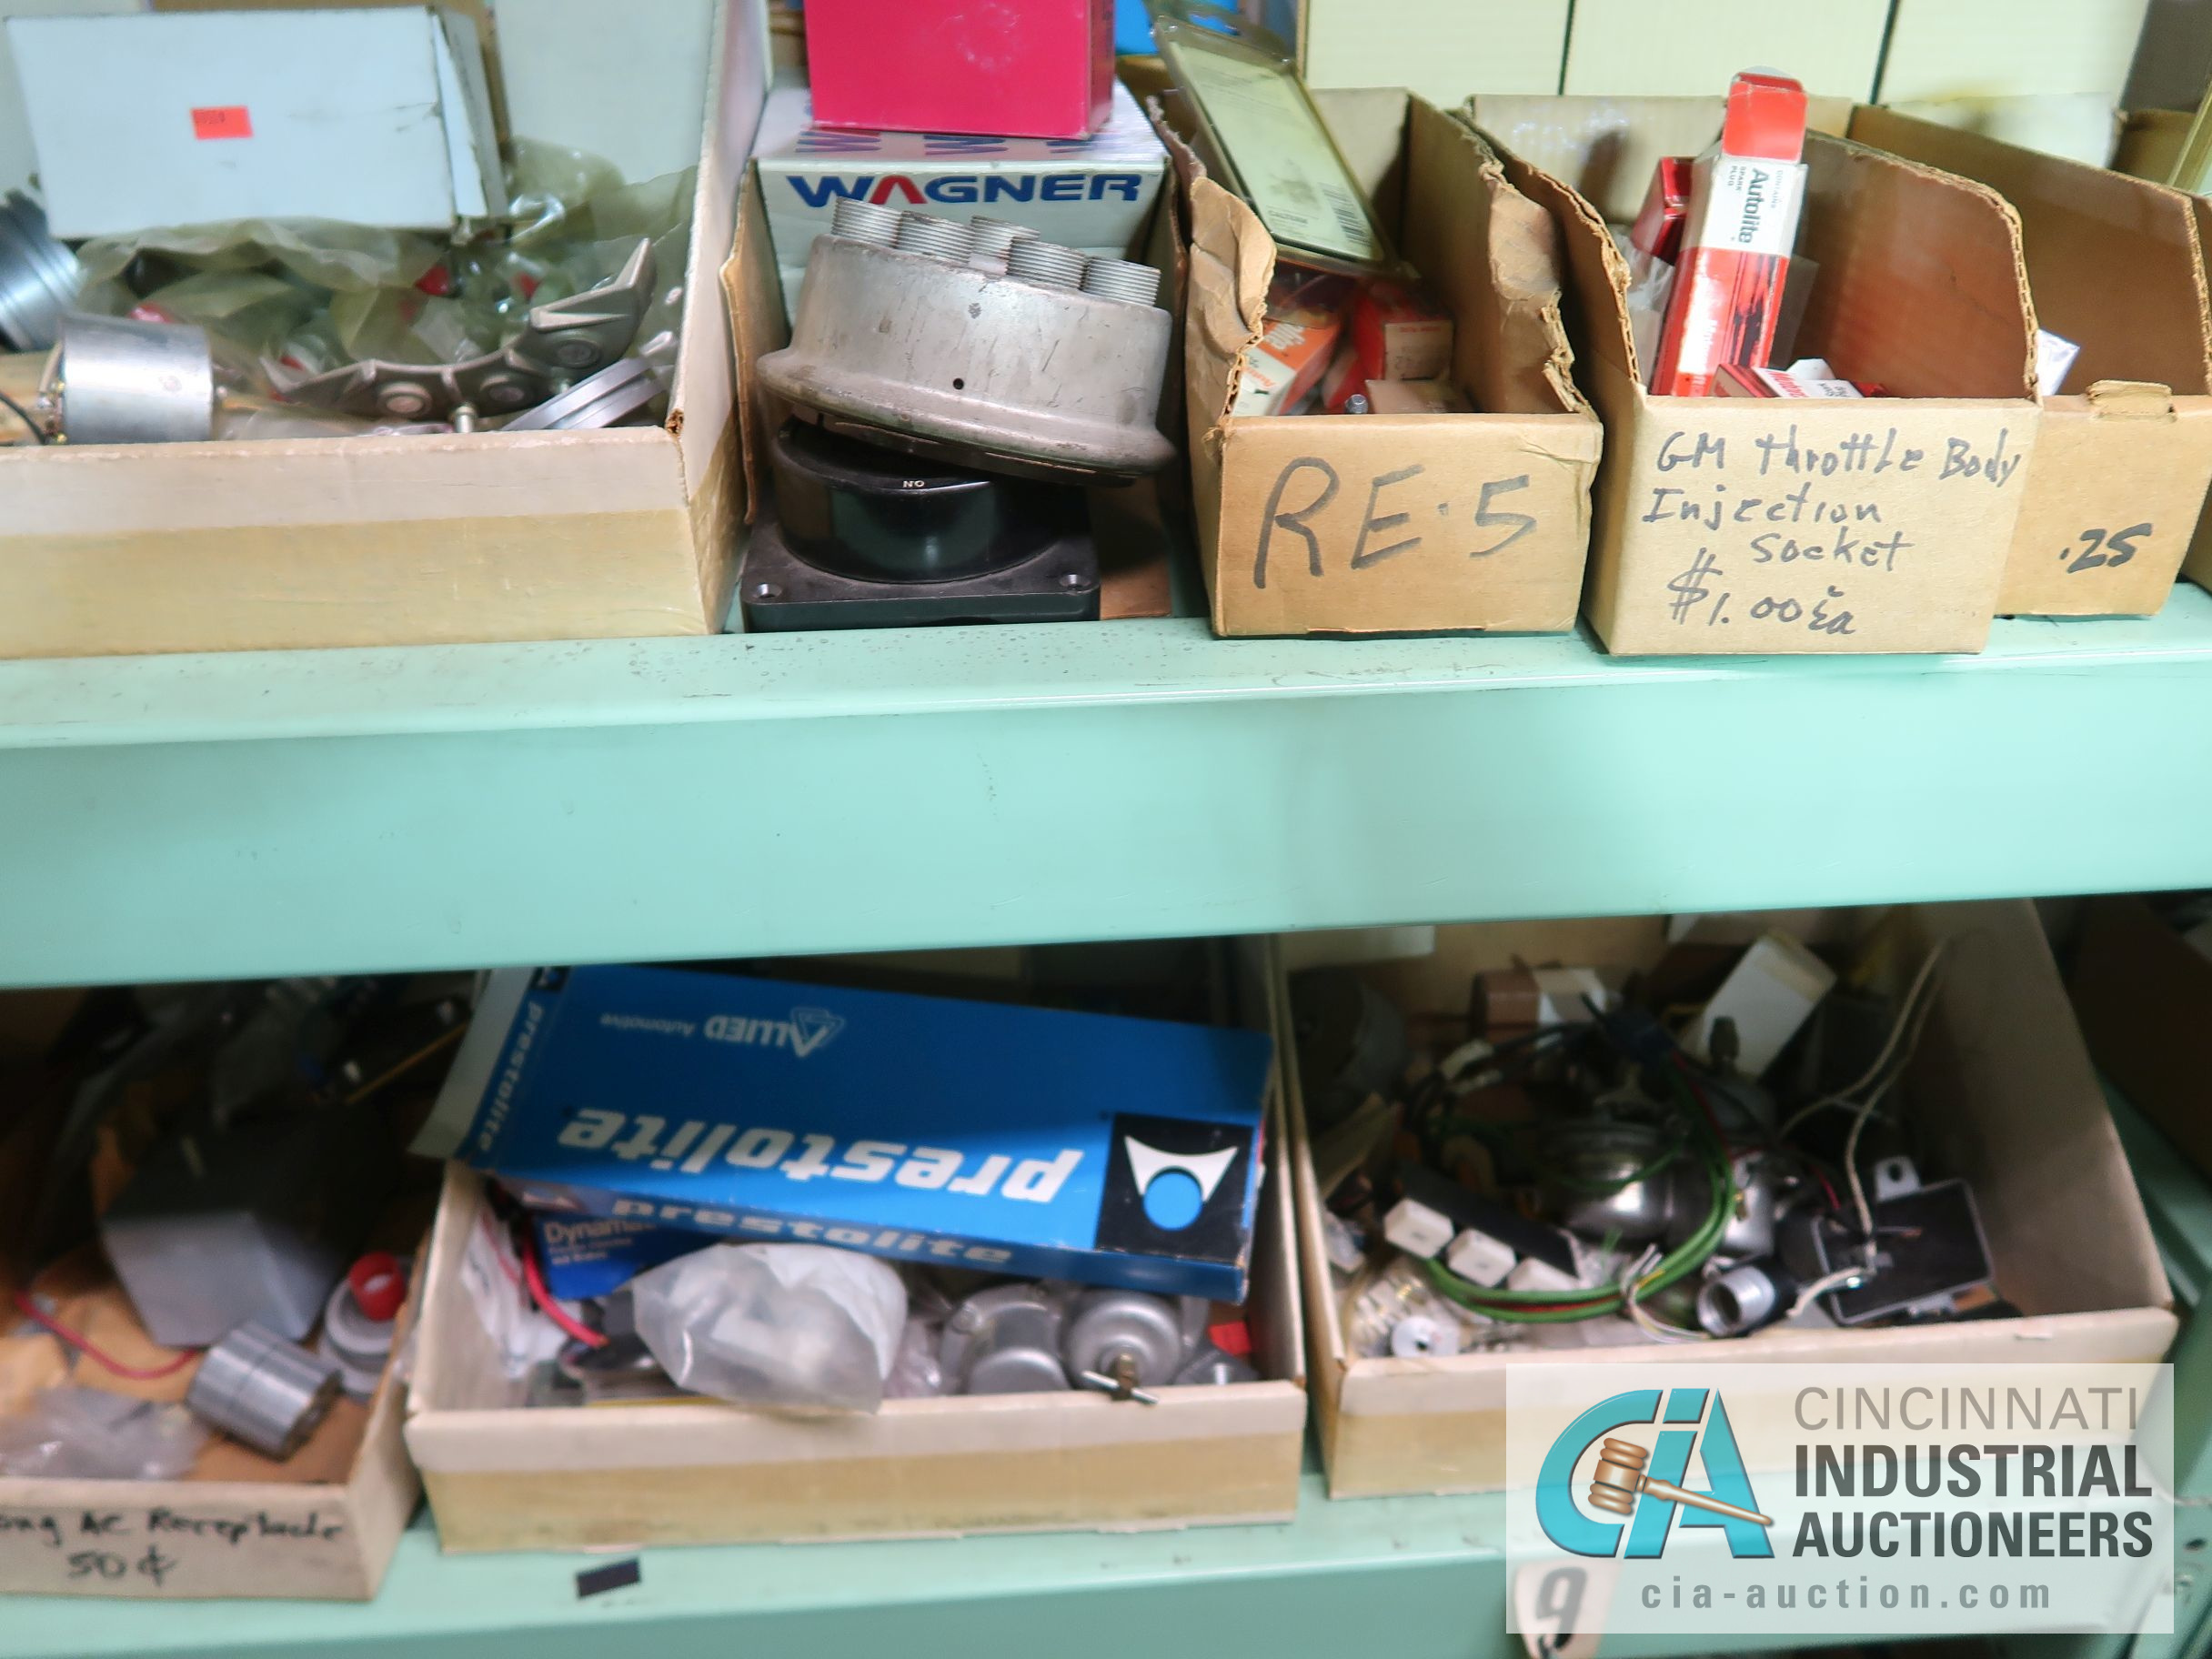 CONTENTS OF (5) RACKS INCLUDING MISCELLANEOUS AUTOMOTIVE PARTS, LIGHTS, FILTERS, ENGINE PARTS, RIMS, - Image 5 of 29